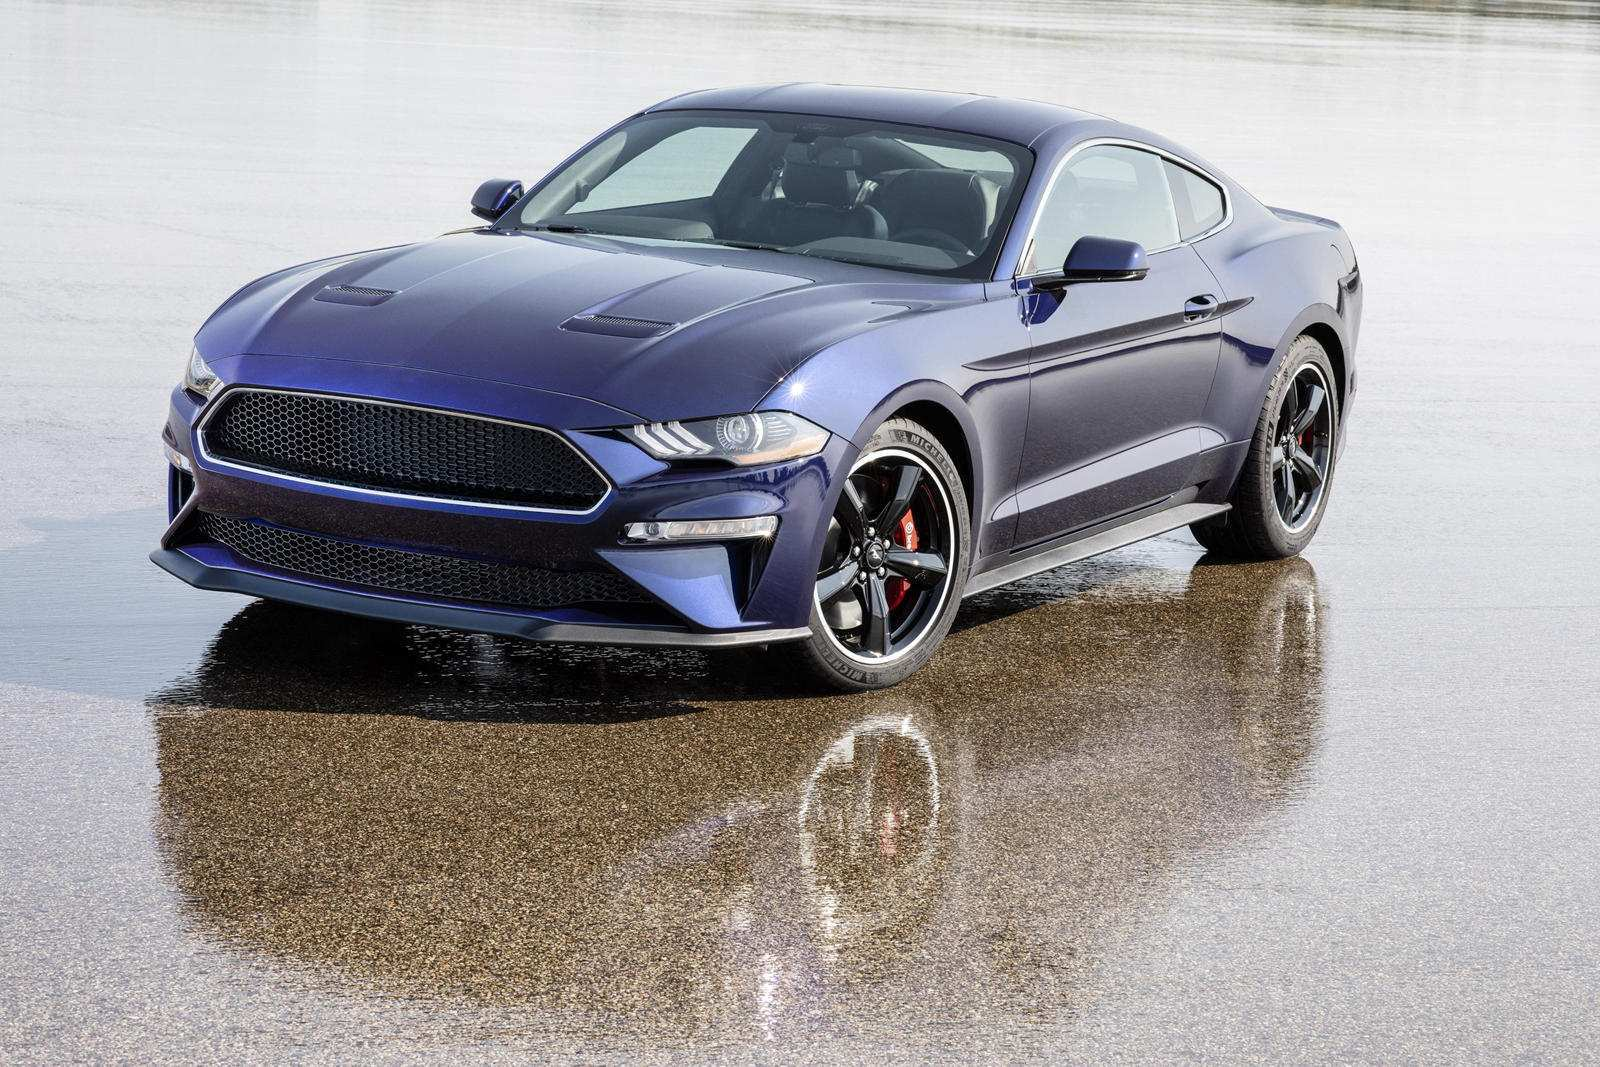 69 Best Review Ford Mustang Gt 2020 Spy Shoot for Ford Mustang Gt 2020